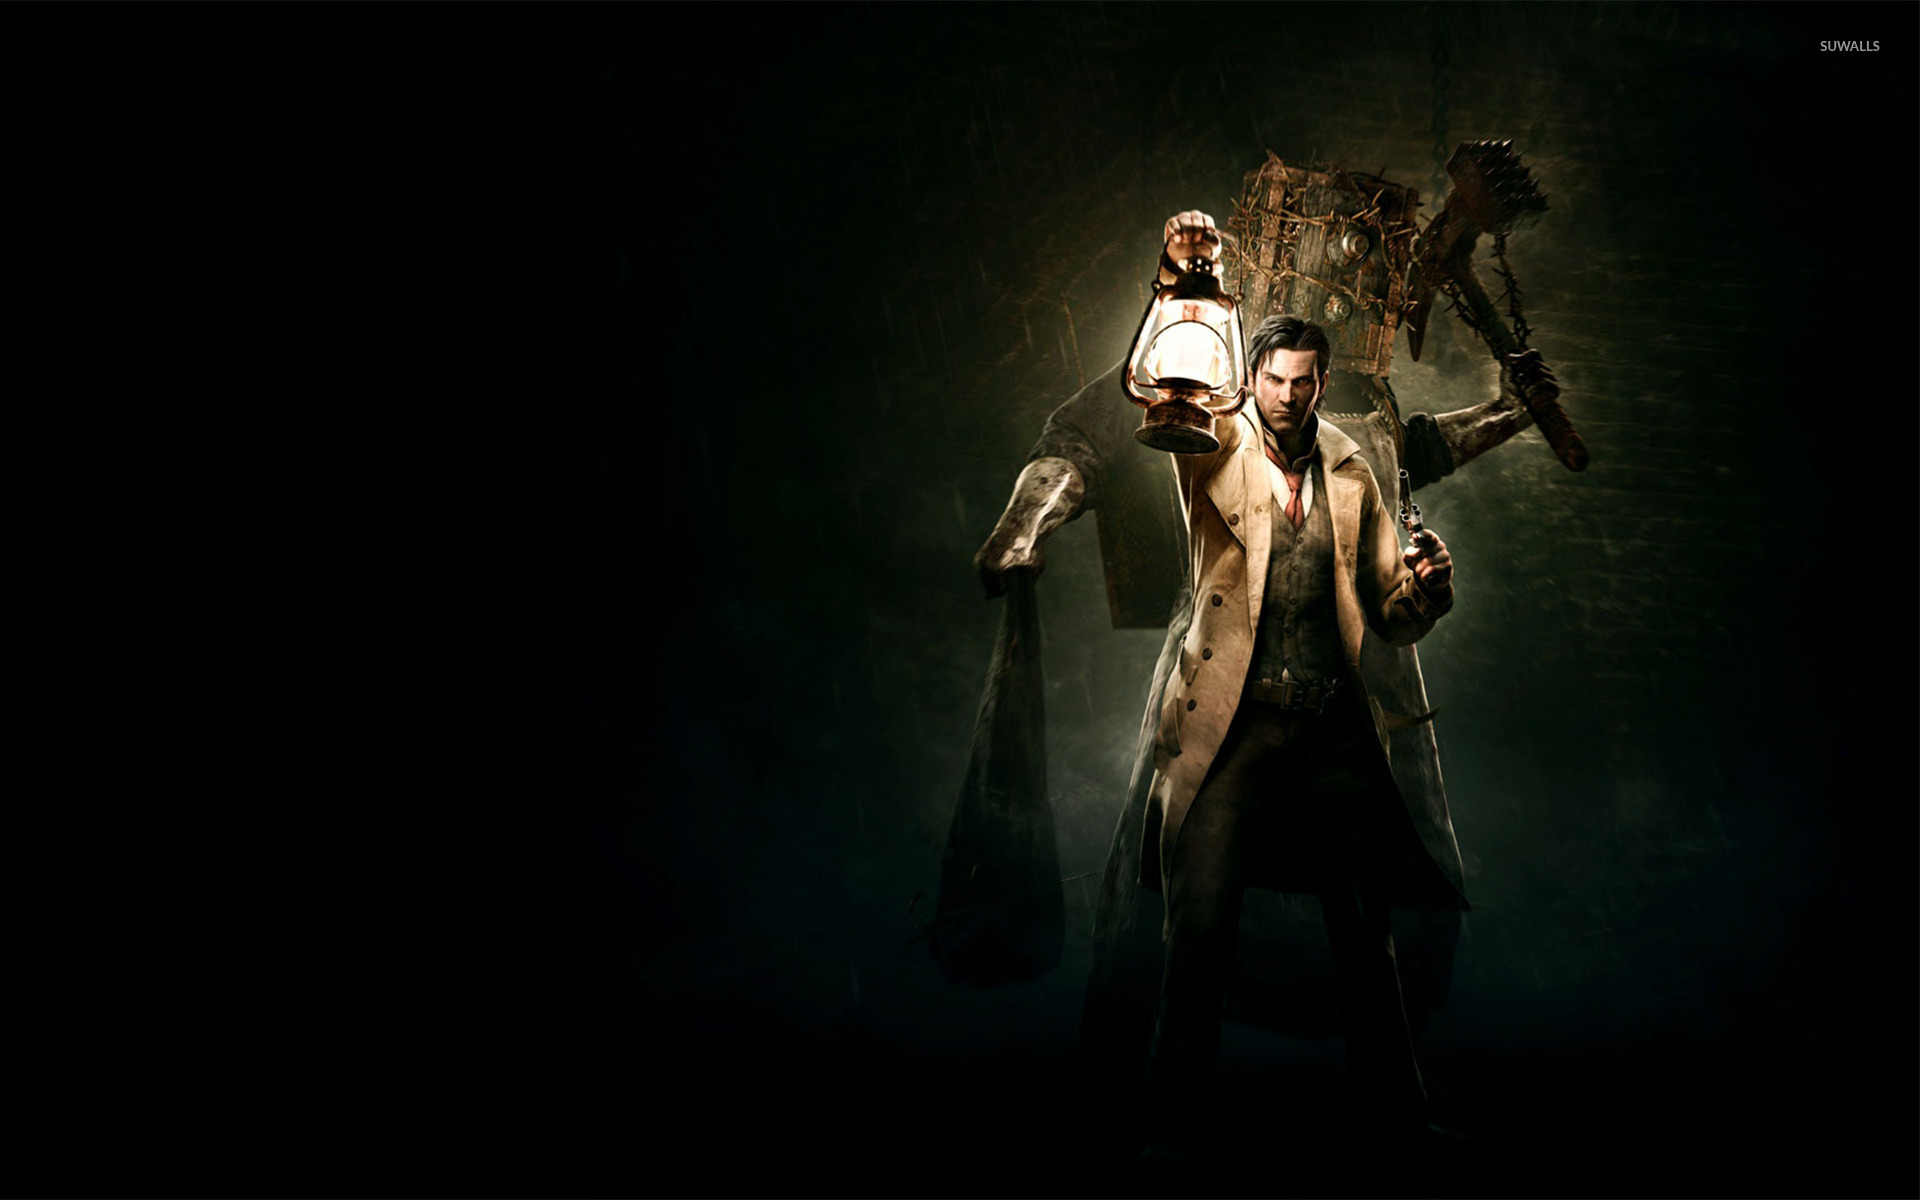 The Evil Within Wallpapers Or Desktop Backgrounds: The Evil Within [3] Wallpaper